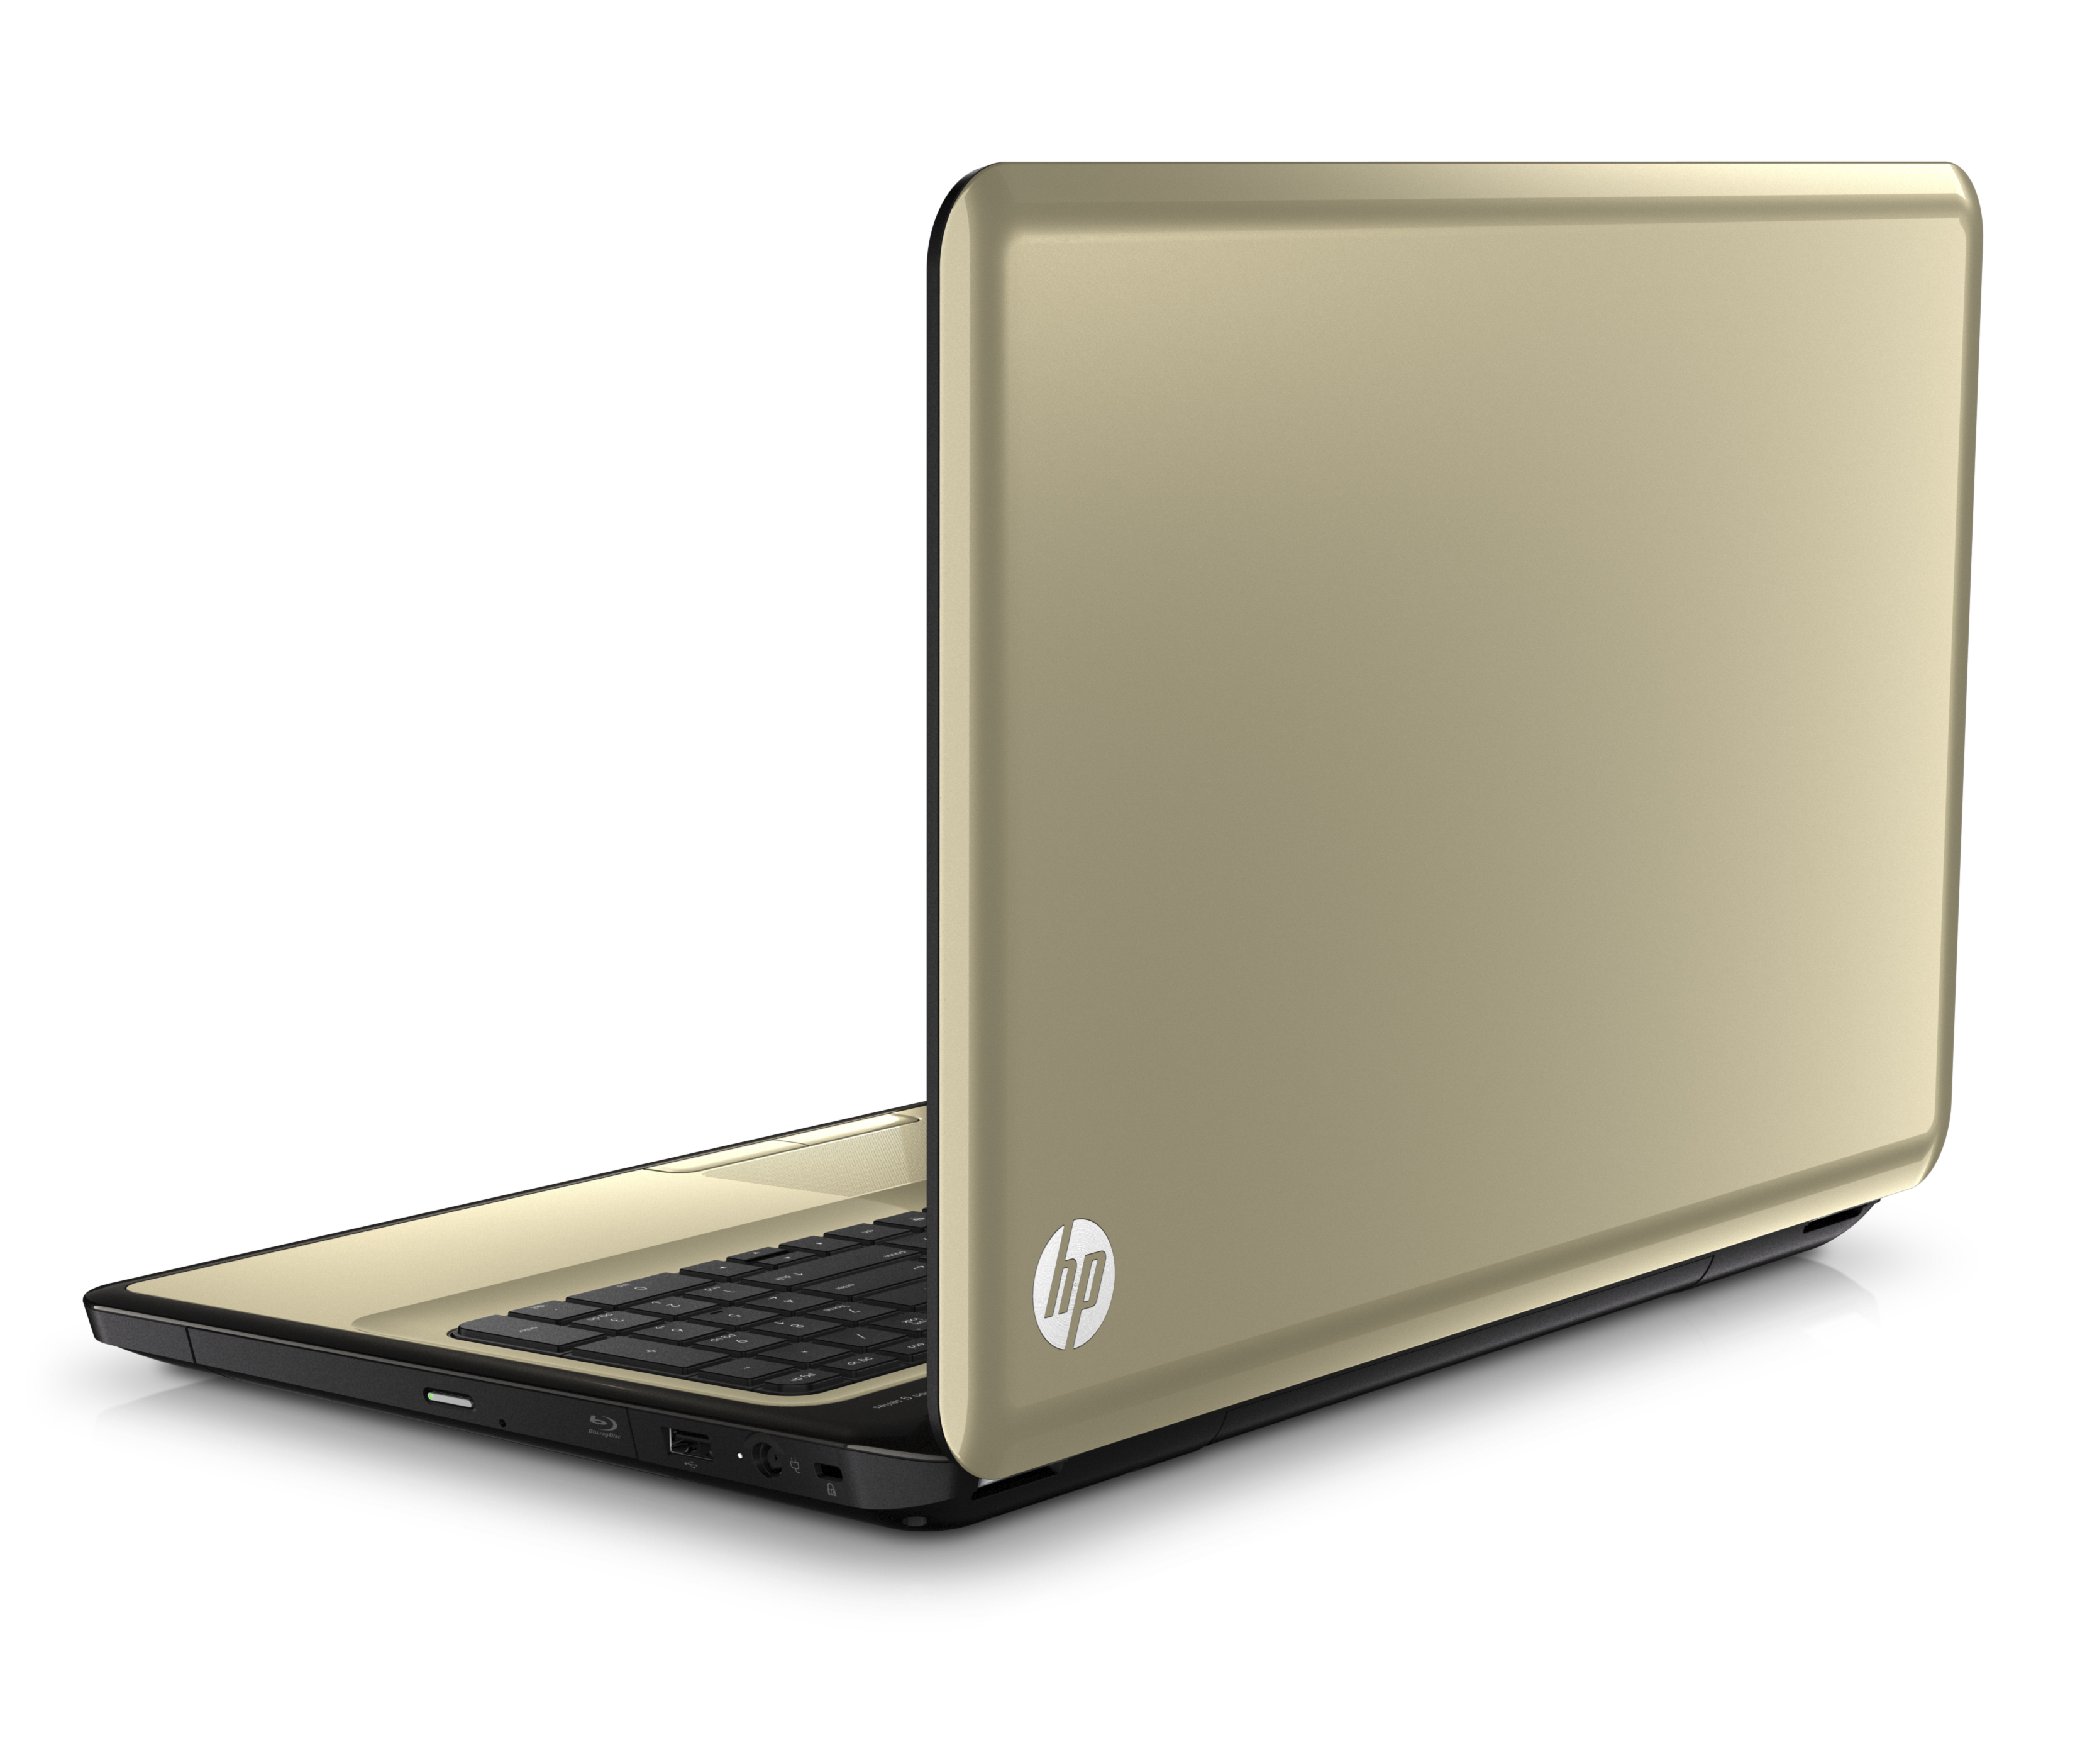 HP Pavilion G Series Announced: G4, G6 and G7 Notebooks